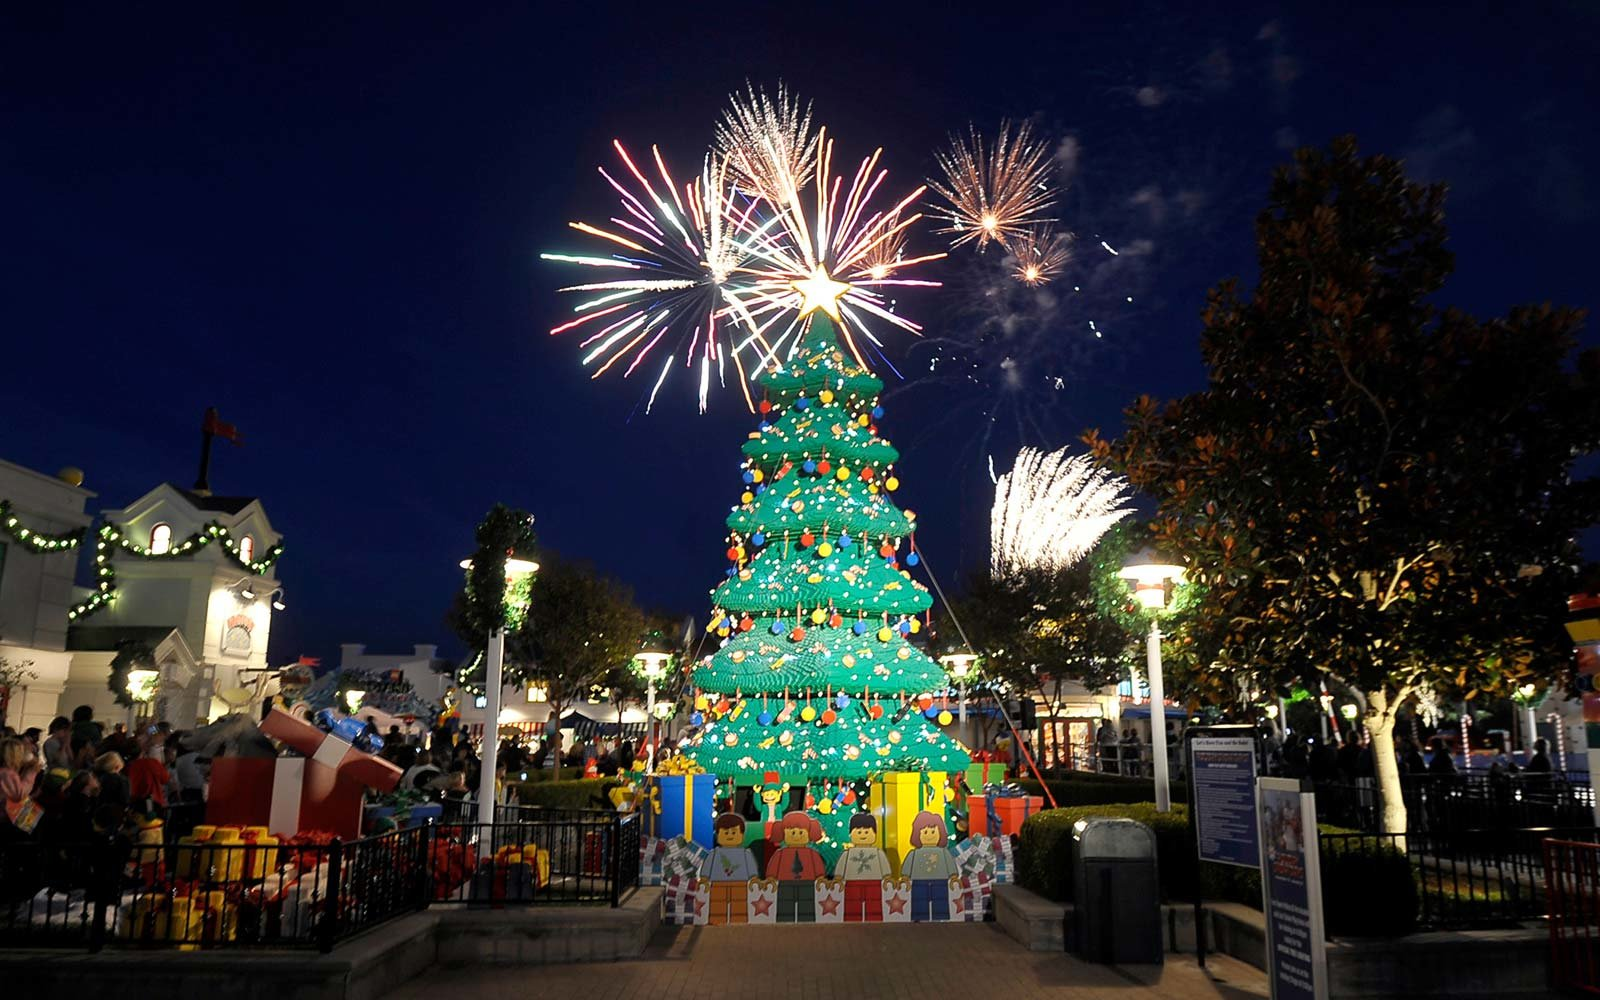 The Weirdest Christmas Trees in the World | Travel + Leisure